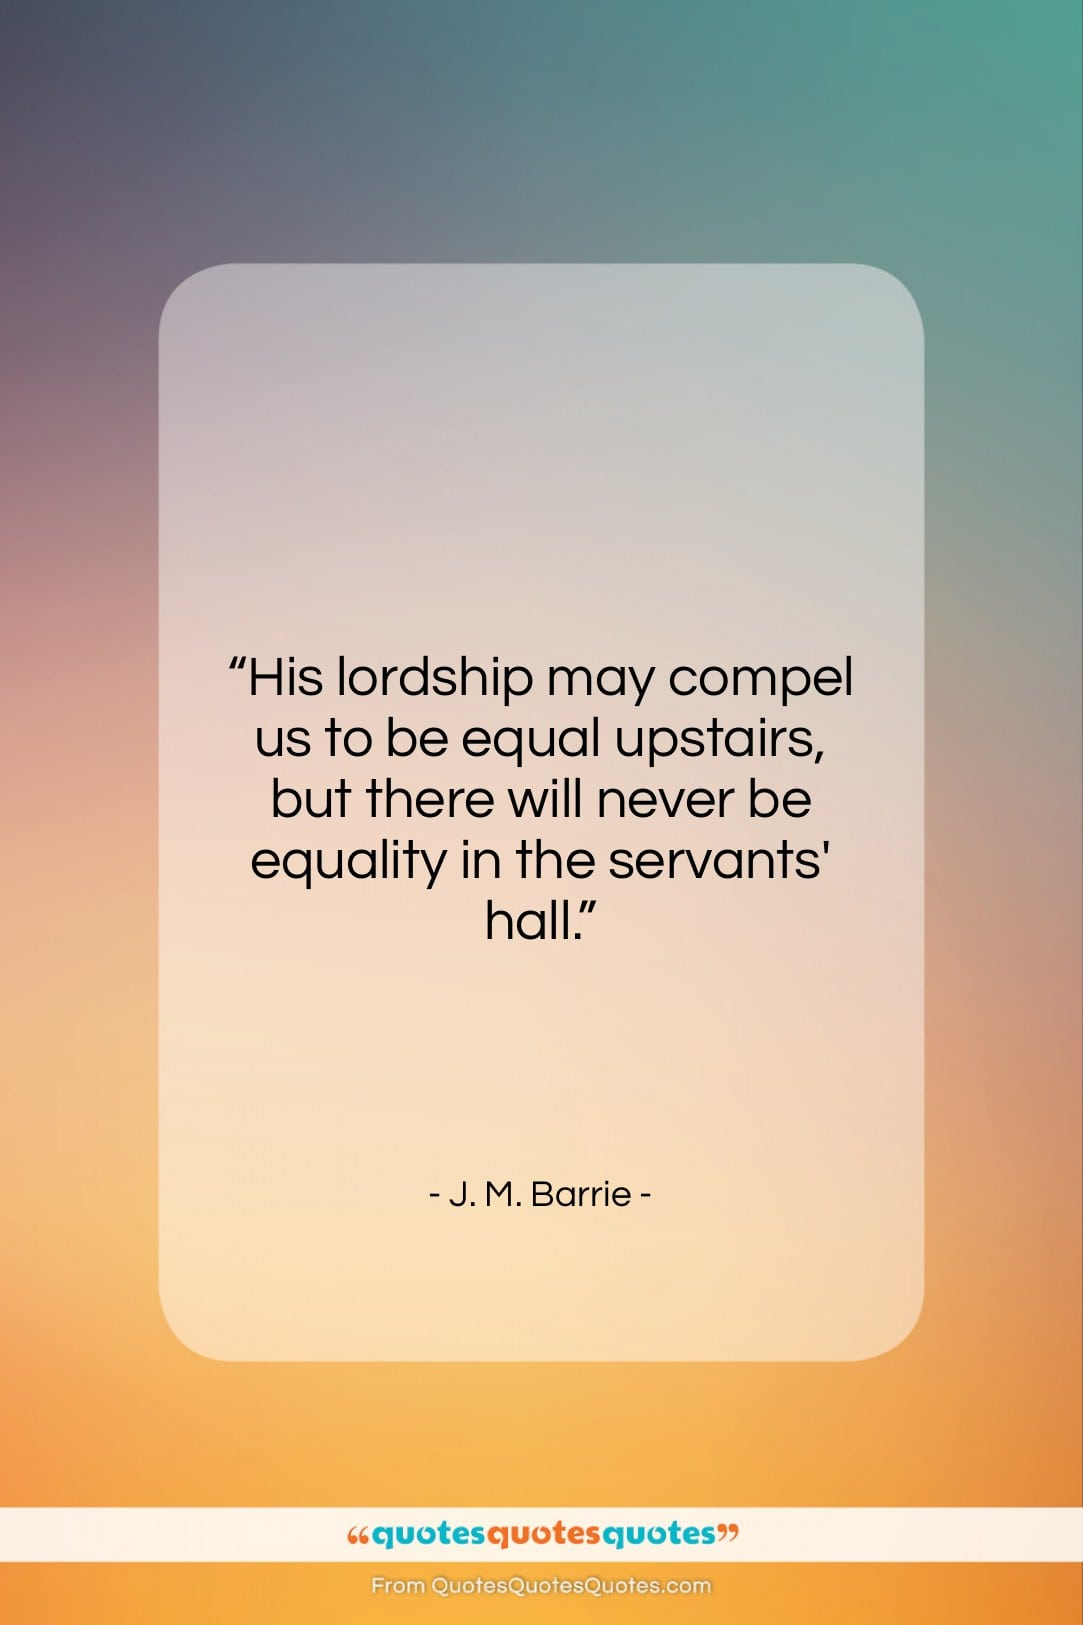 """J. M. Barrie quote: """"His lordship may compel us to be…""""- at QuotesQuotesQuotes.com"""